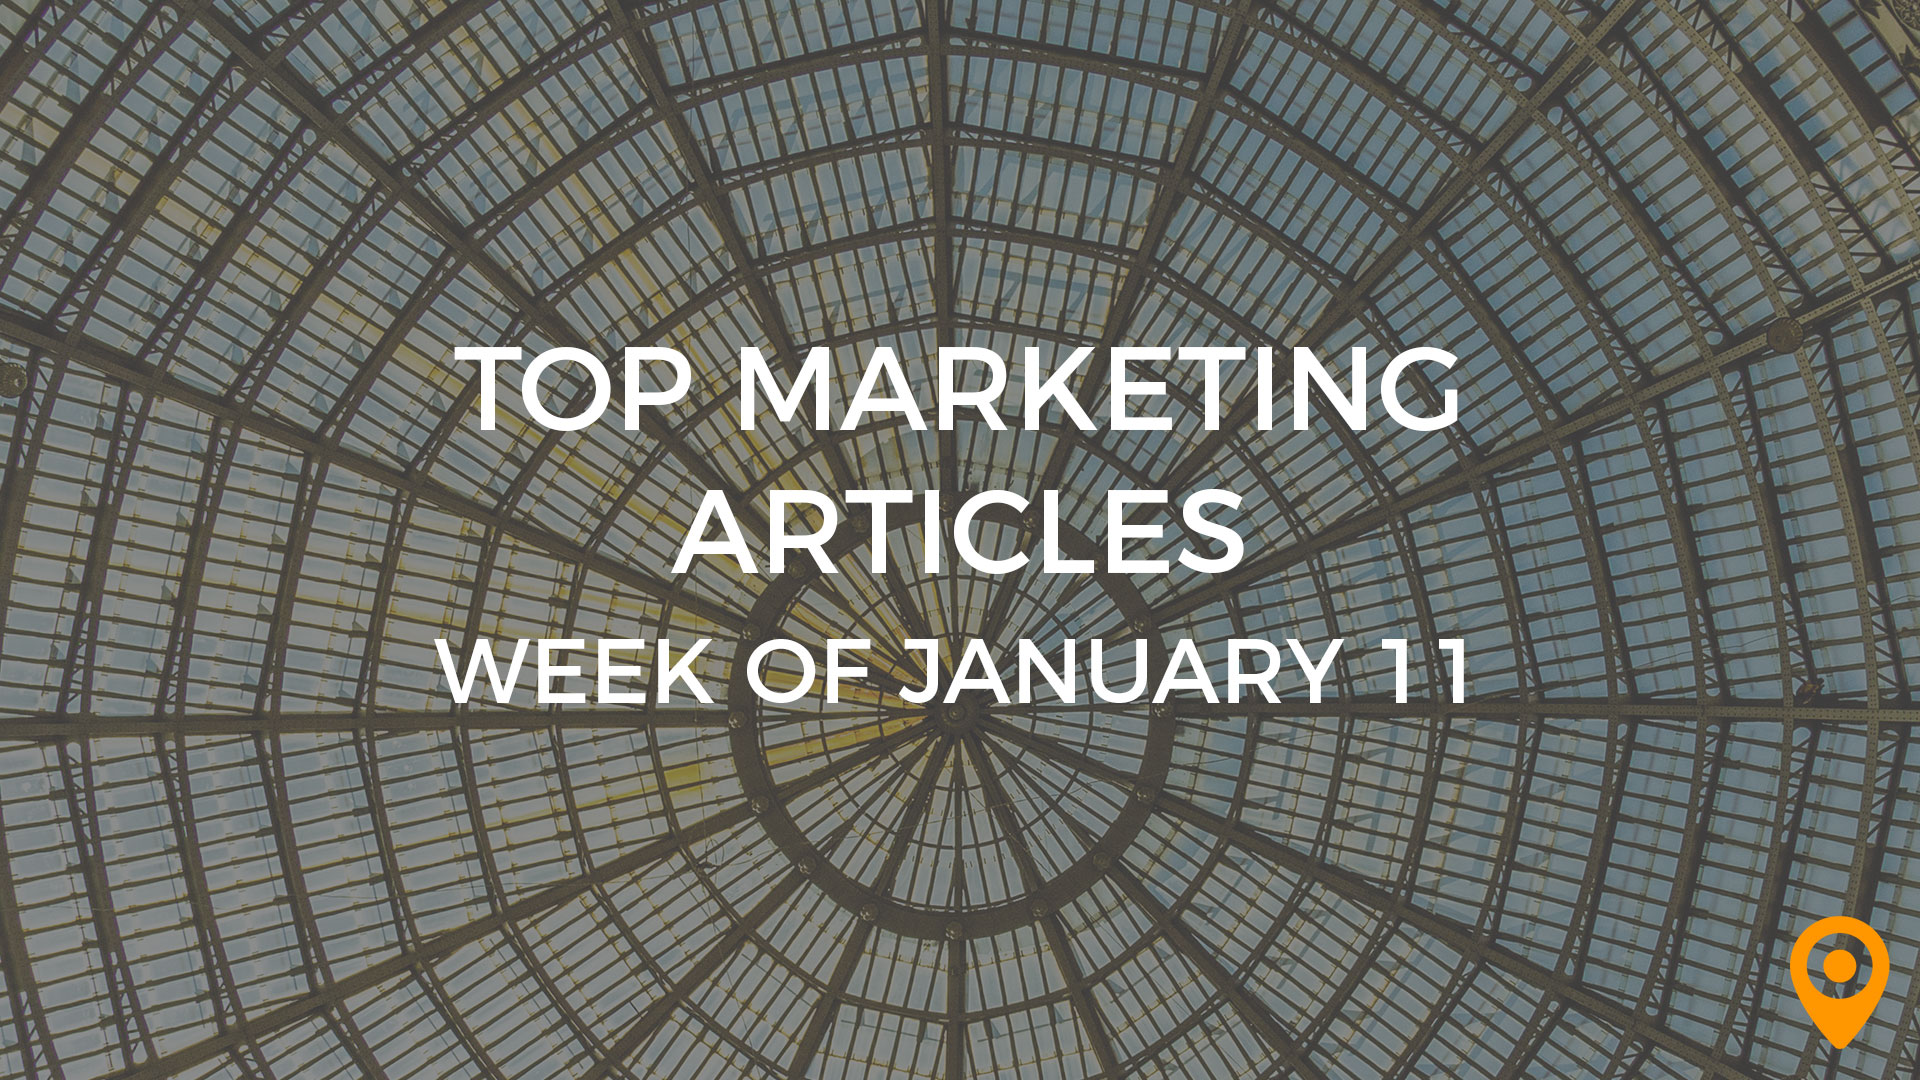 Top Marketing Articles: Week of January 11